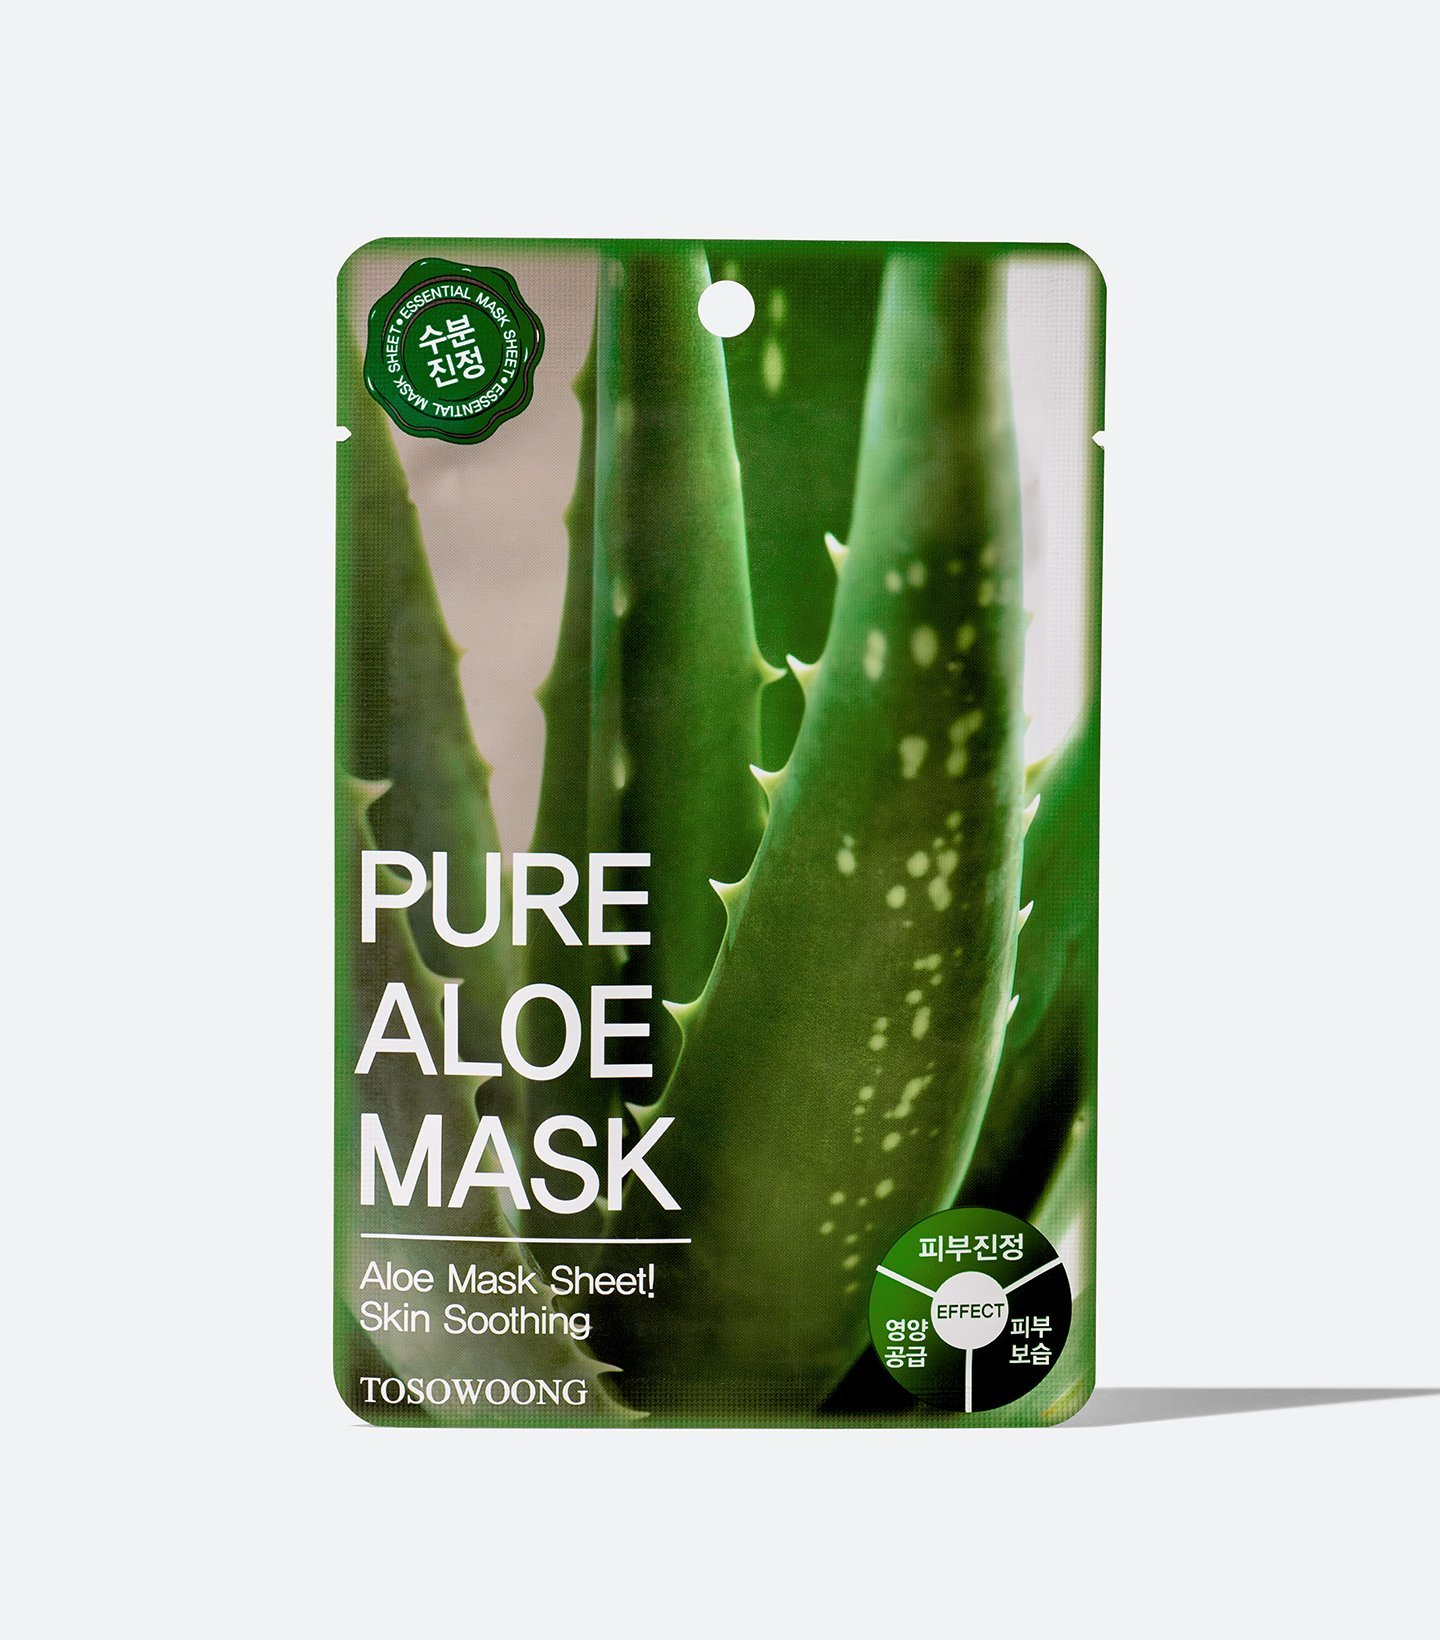 Image of Pure Aloe Mask Pack